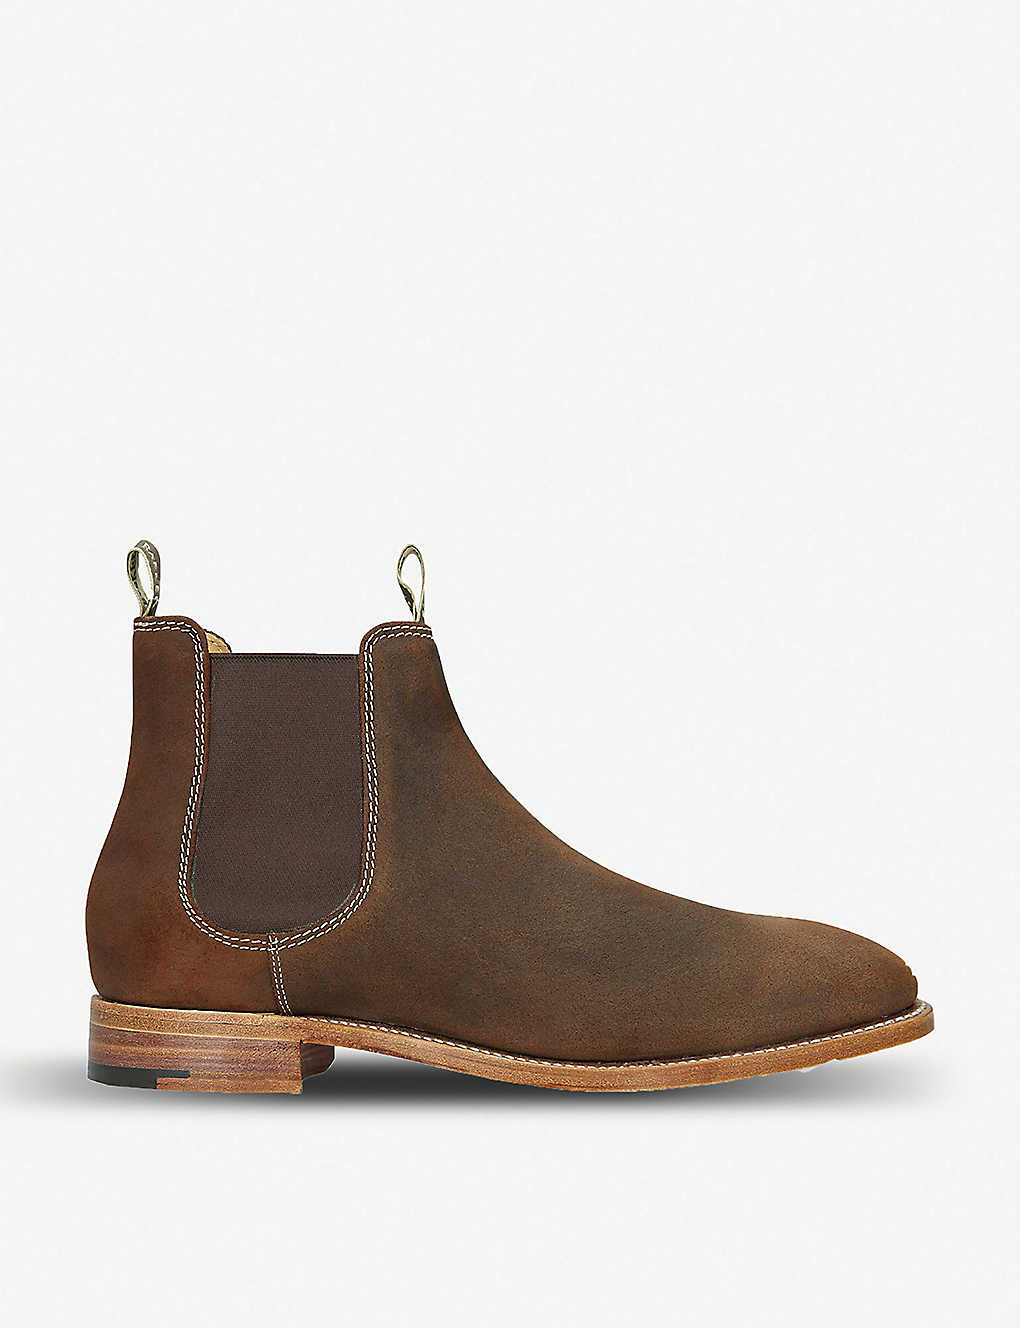 1a736c85446 Mansfield suede chelsea boots